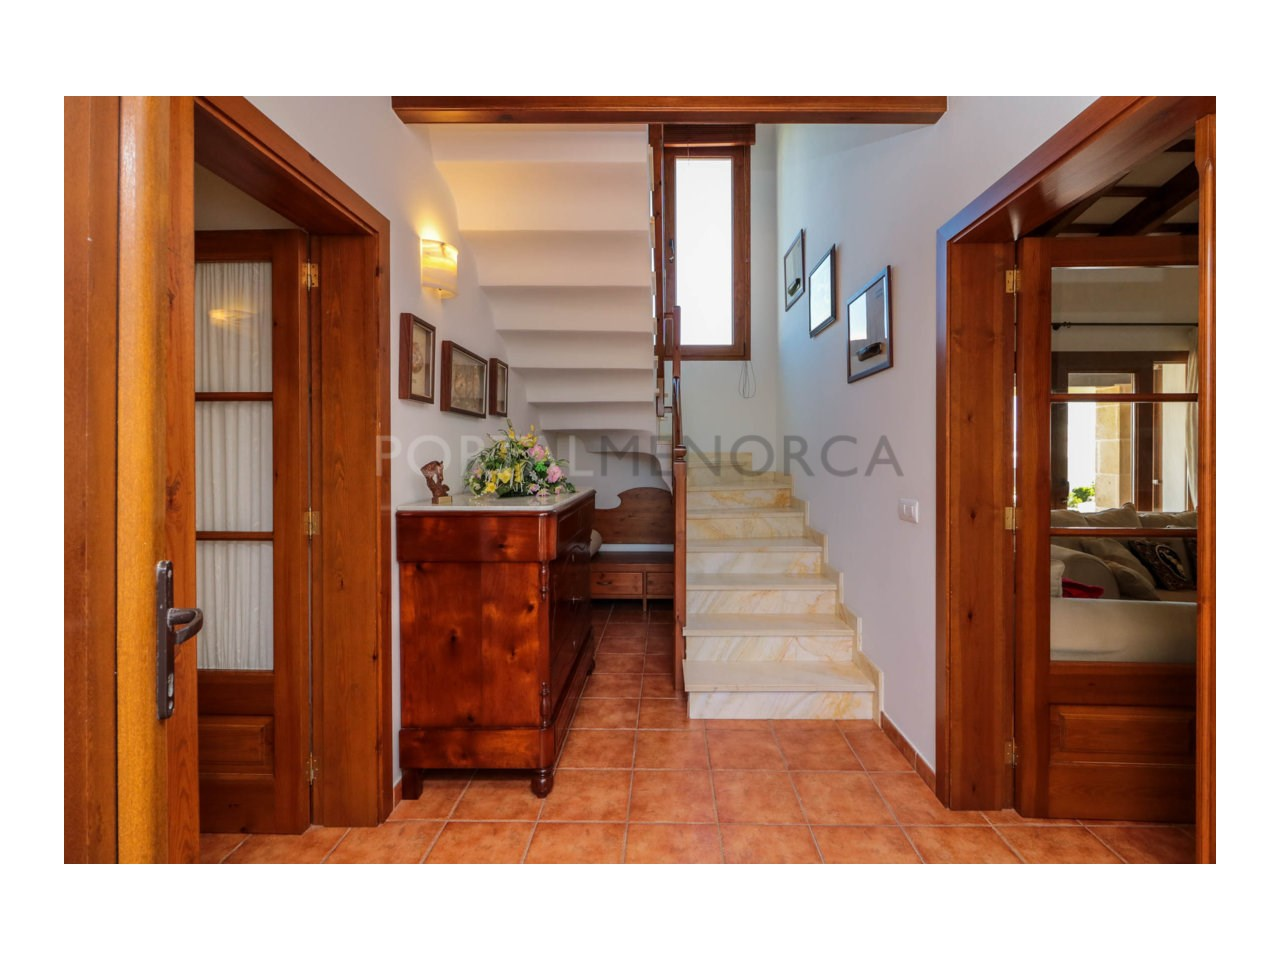 Villa for sale in Cala Morell with sea views and tourist license-Hall